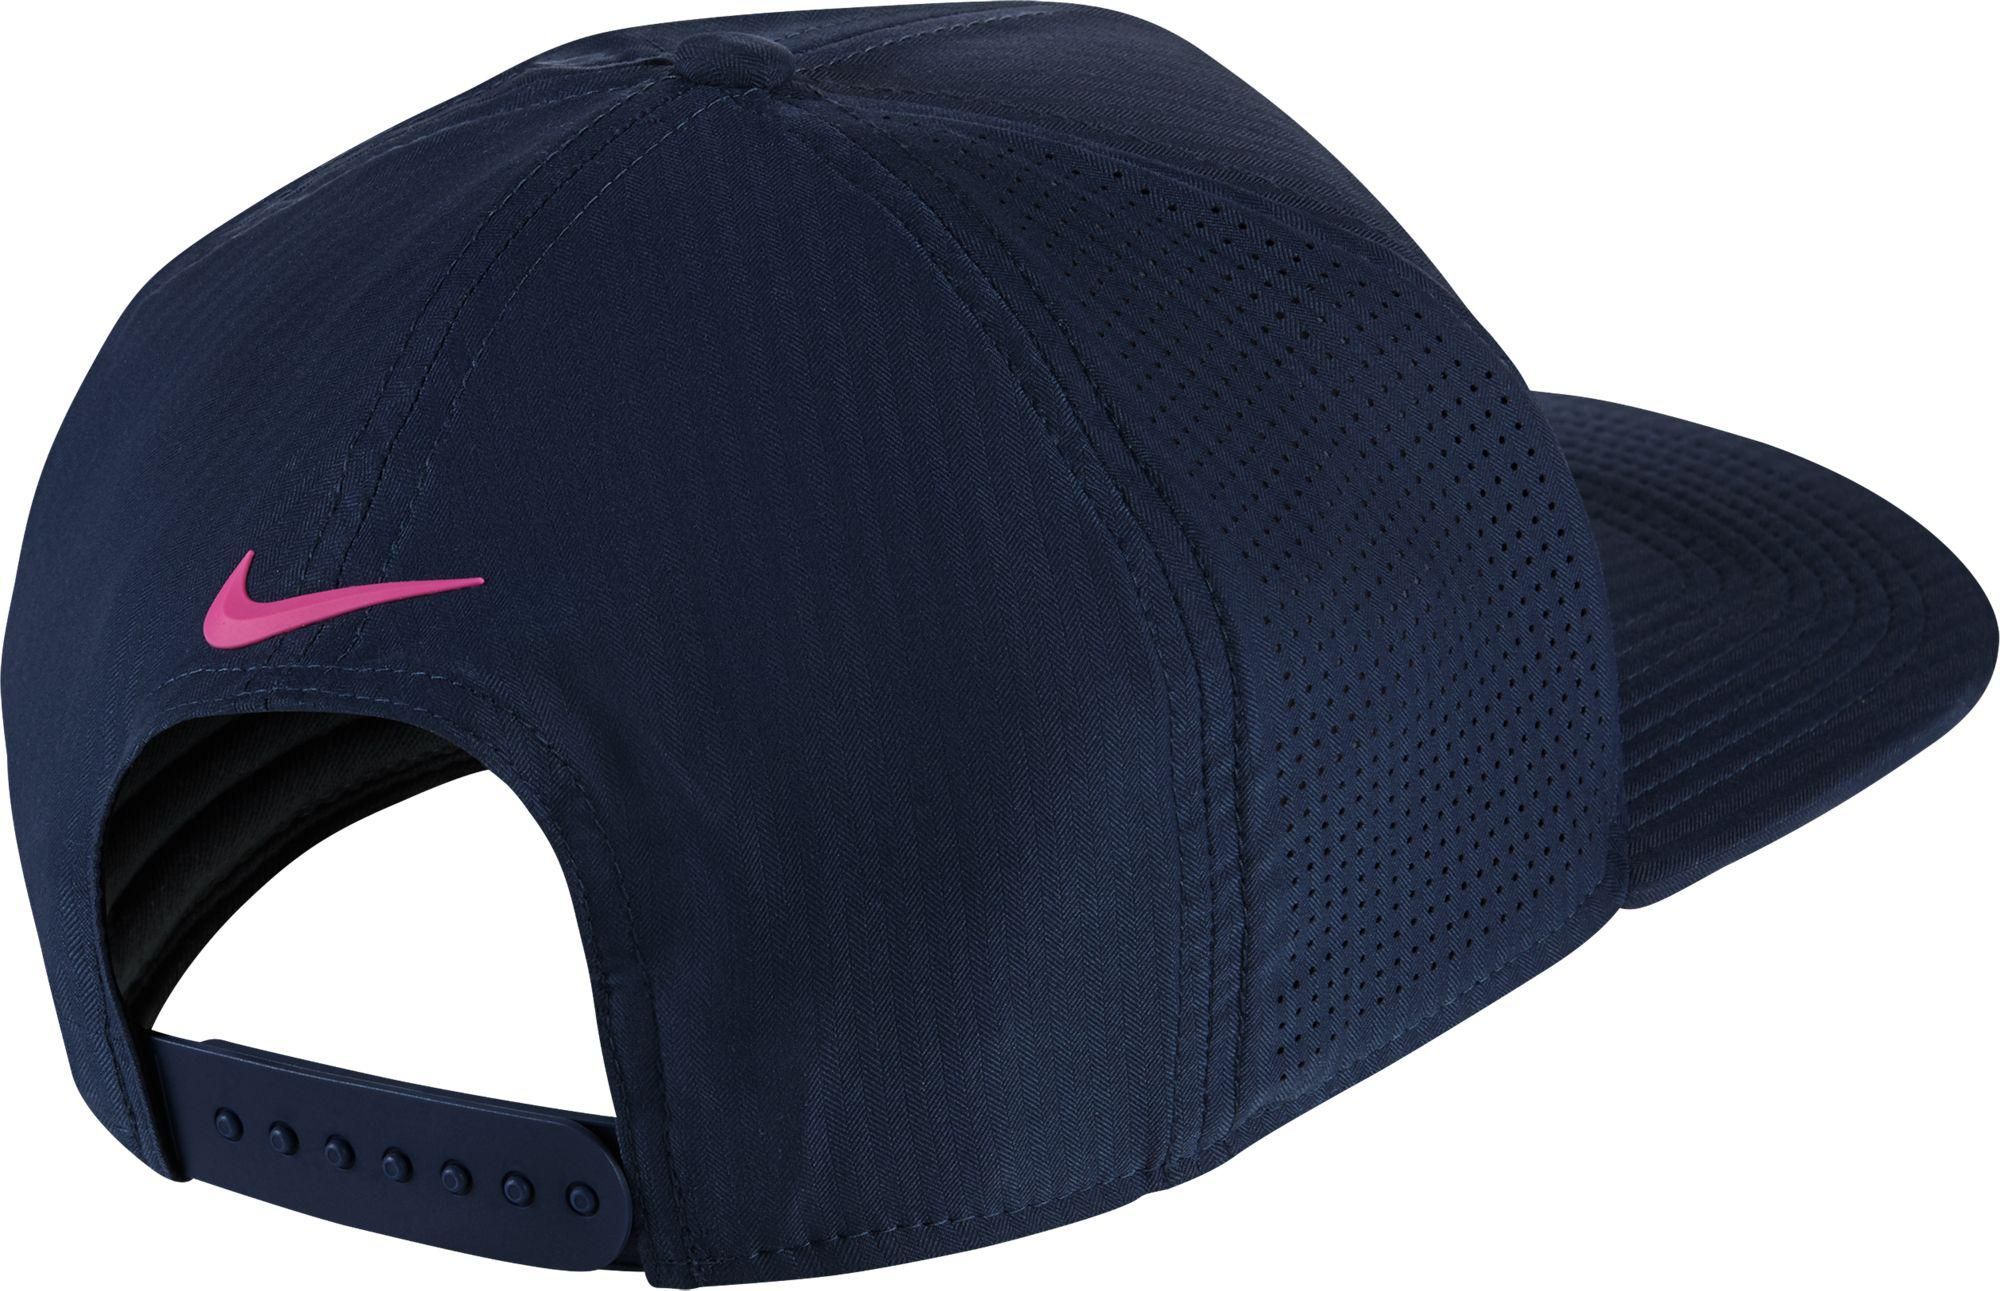 14e80ed180eac Nike Aerobill Pro Perforated Golf Hat in Blue for Men - Lyst